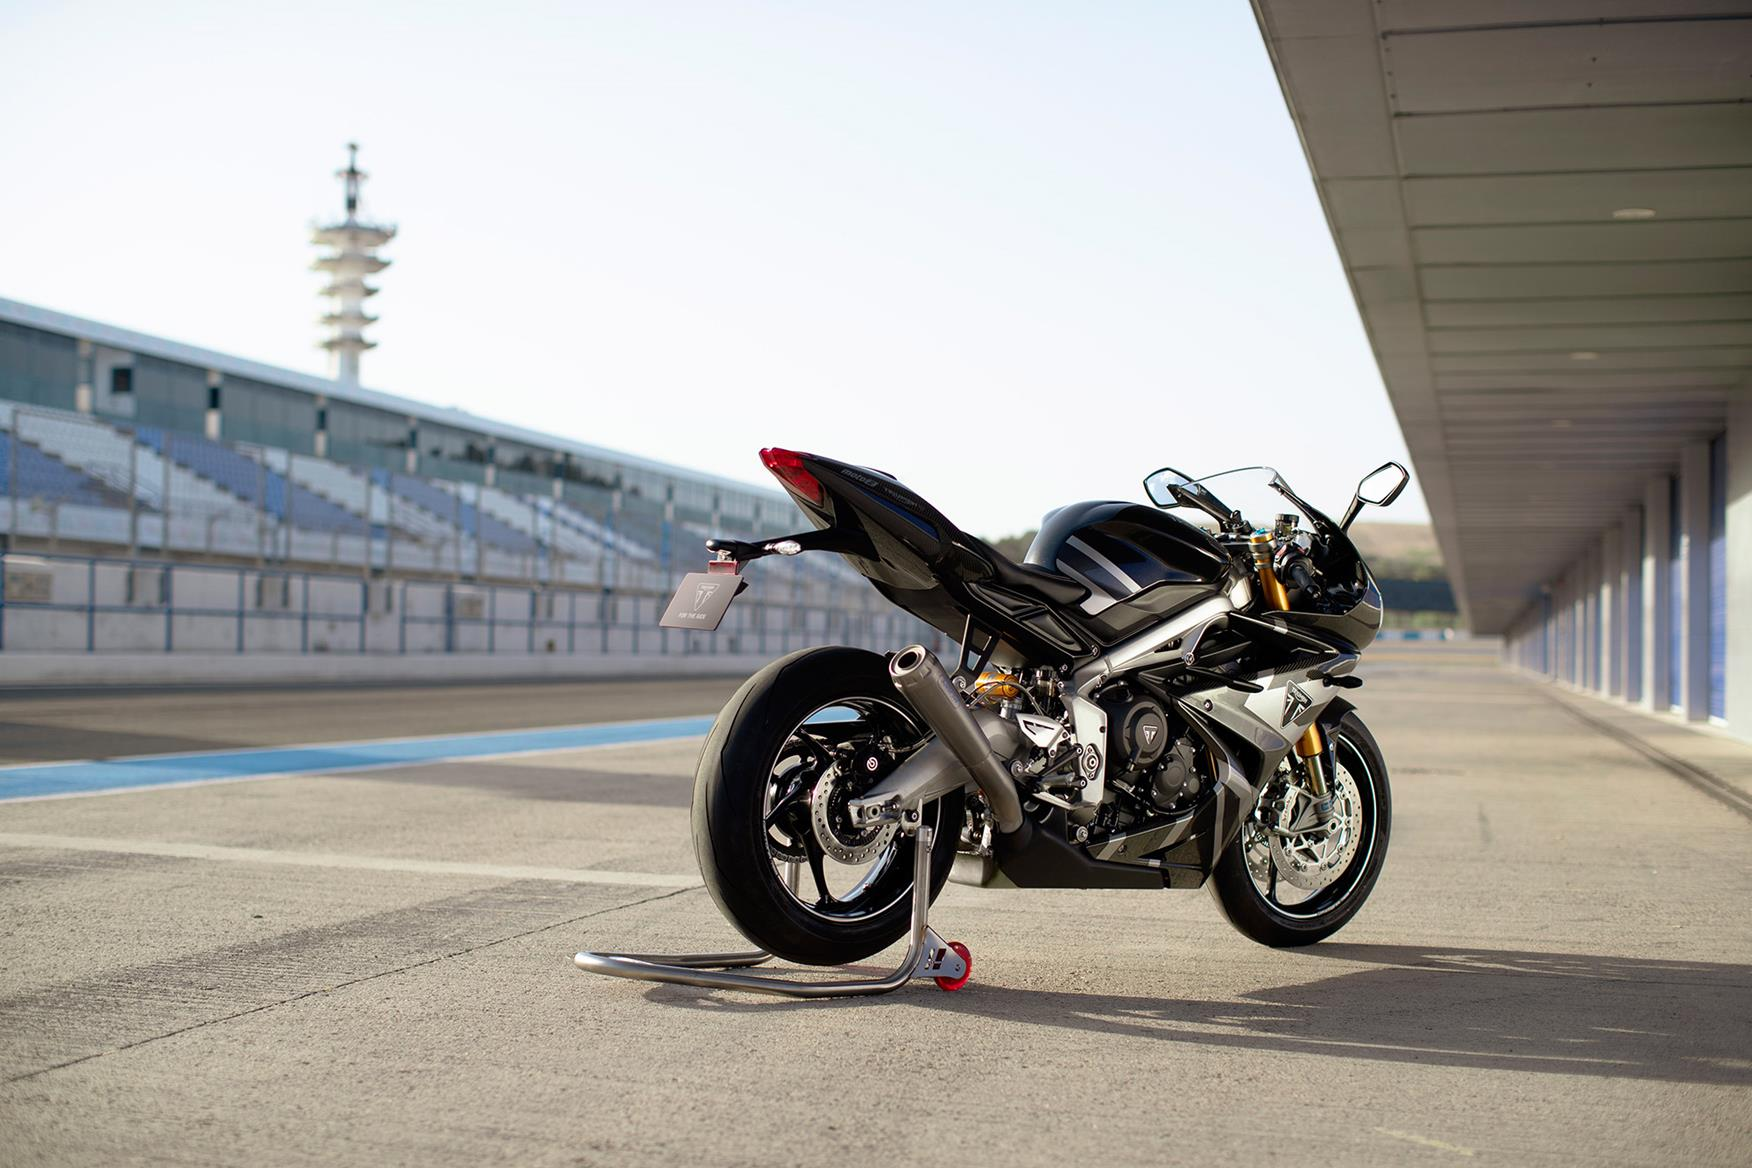 Triumph Daytona 765 Moto2 Limited Edition right side